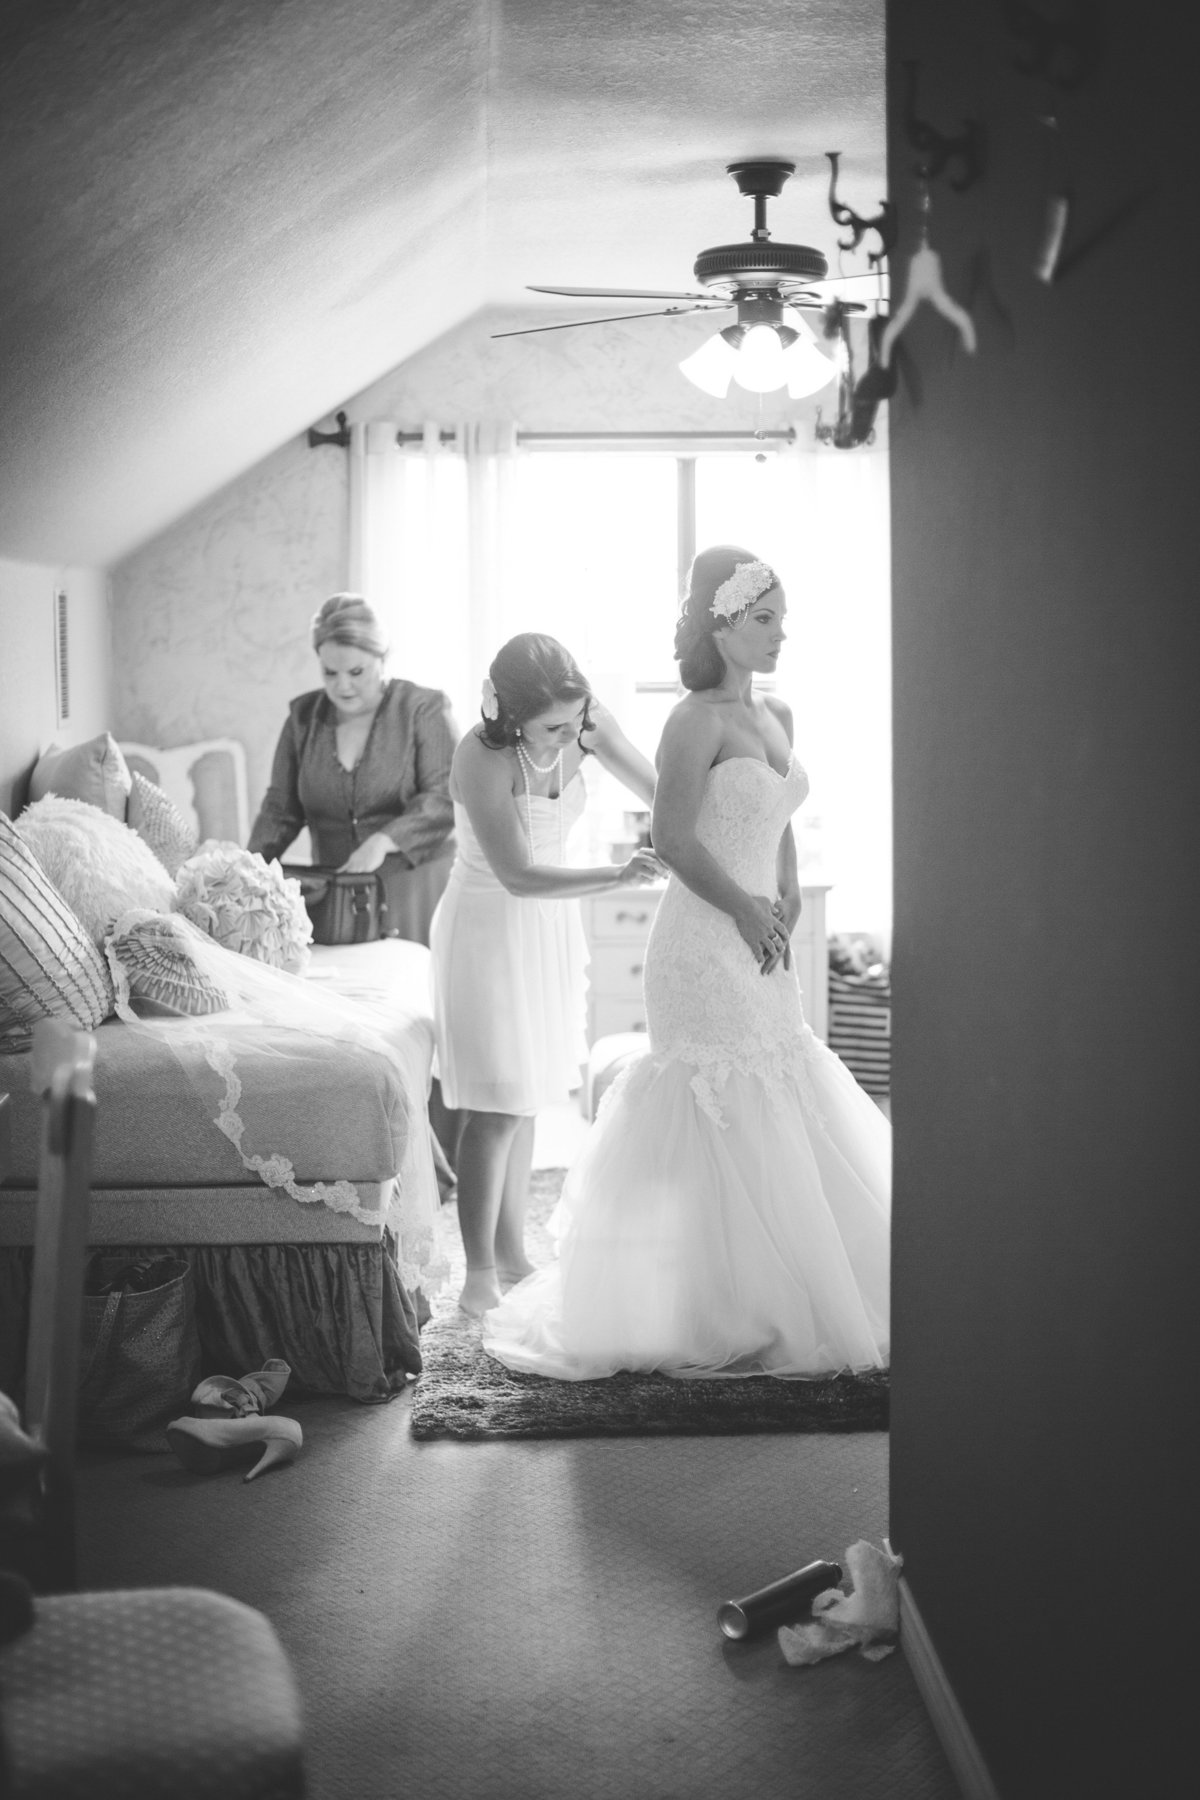 Bridesmaids get bride ready before wedding ceremony at Vista west ranch in Texas Hill Country wedding